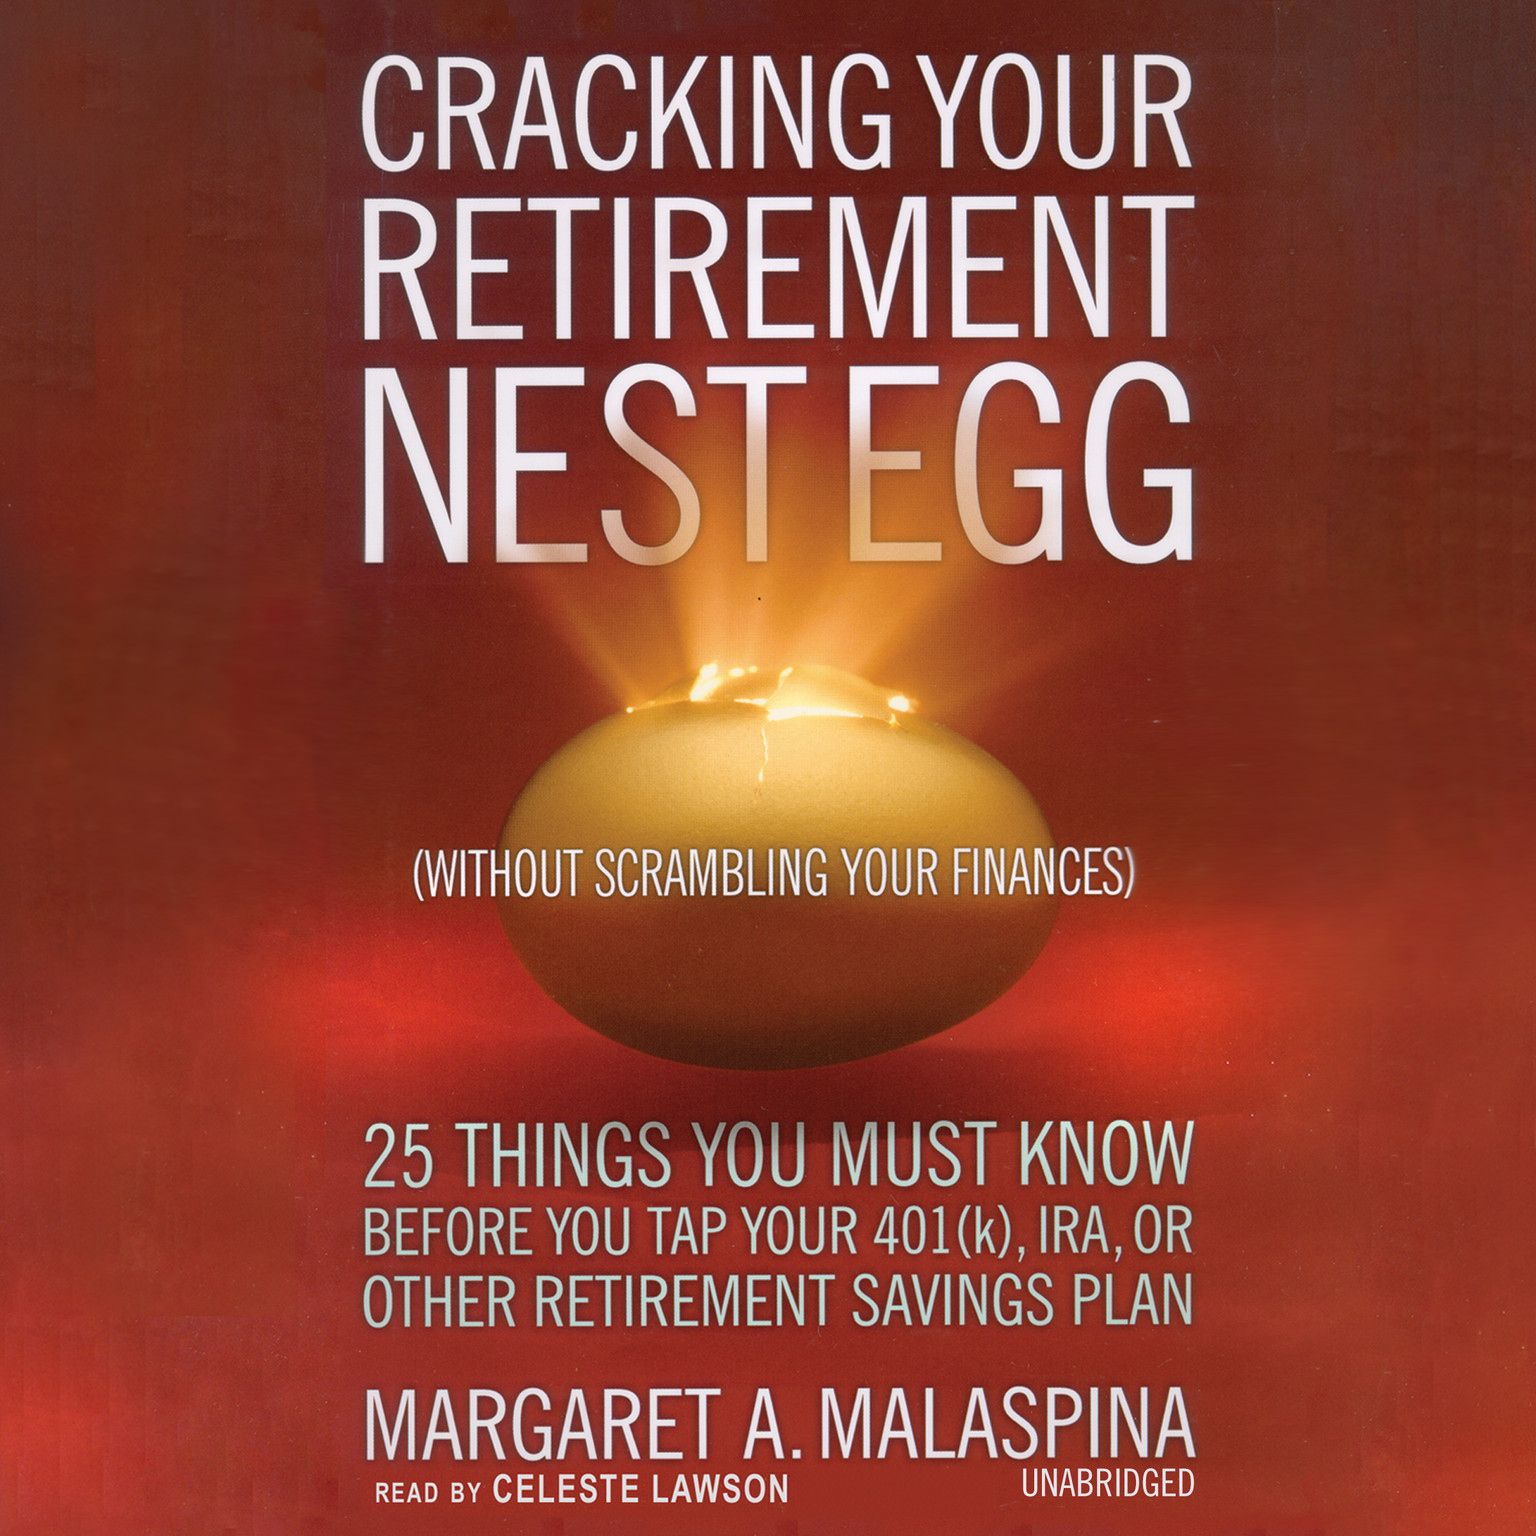 Printable Cracking Your Retirement Nest Egg (without Scrambling Your Finances): 25 Things You Must Know before You Tap Your 401(k), IRA, or Other Retirement Savings Plan Audiobook Cover Art